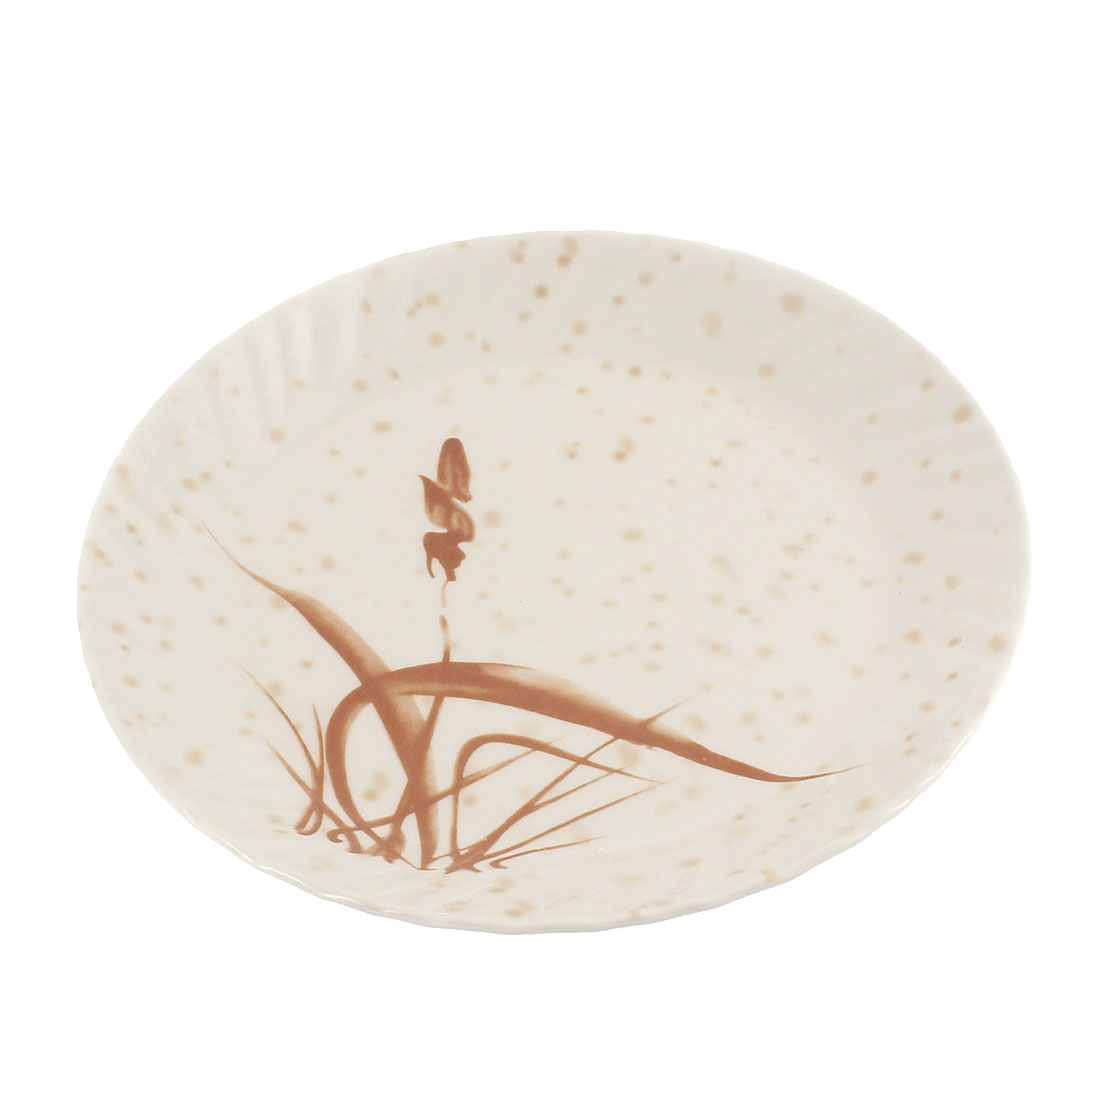 "Plastic Grass Printed Round Design Lunch Food Dish Plate 23cm 9"" Dia"